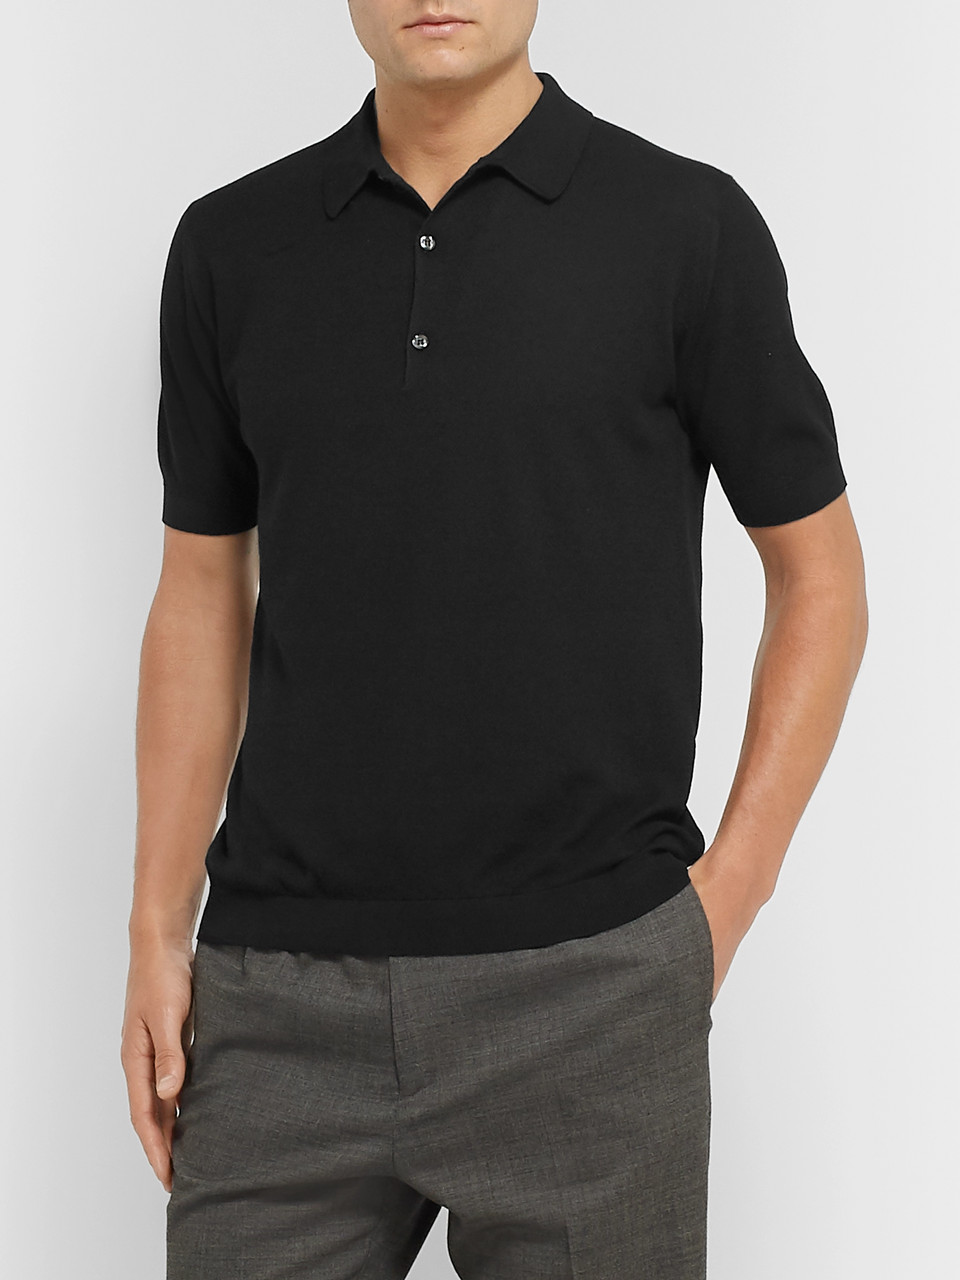 John Smedley Roth Knitted Sea Island Cotton Polo Shirt